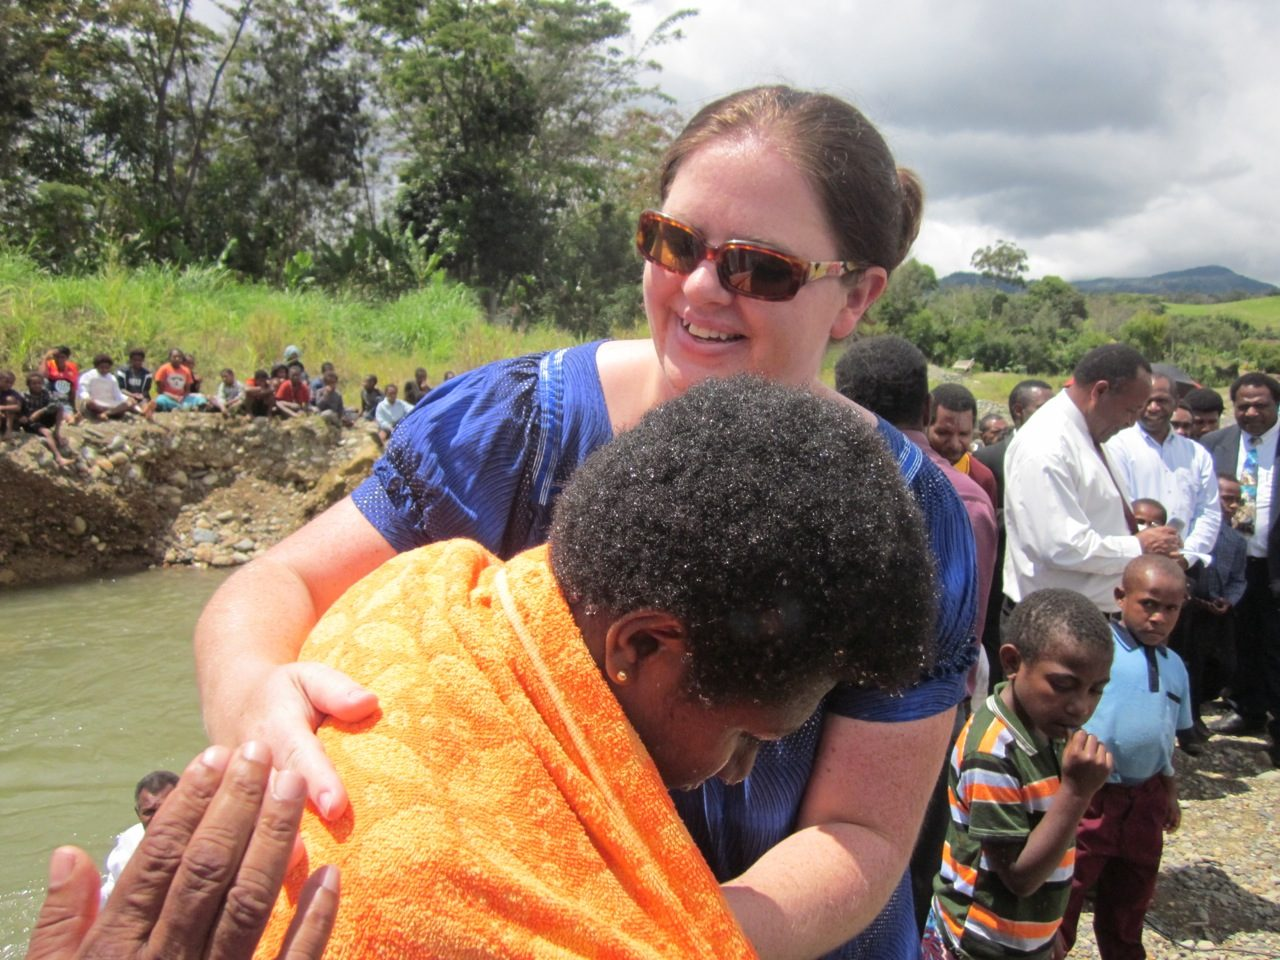 Placing towels around the students after their baptism.